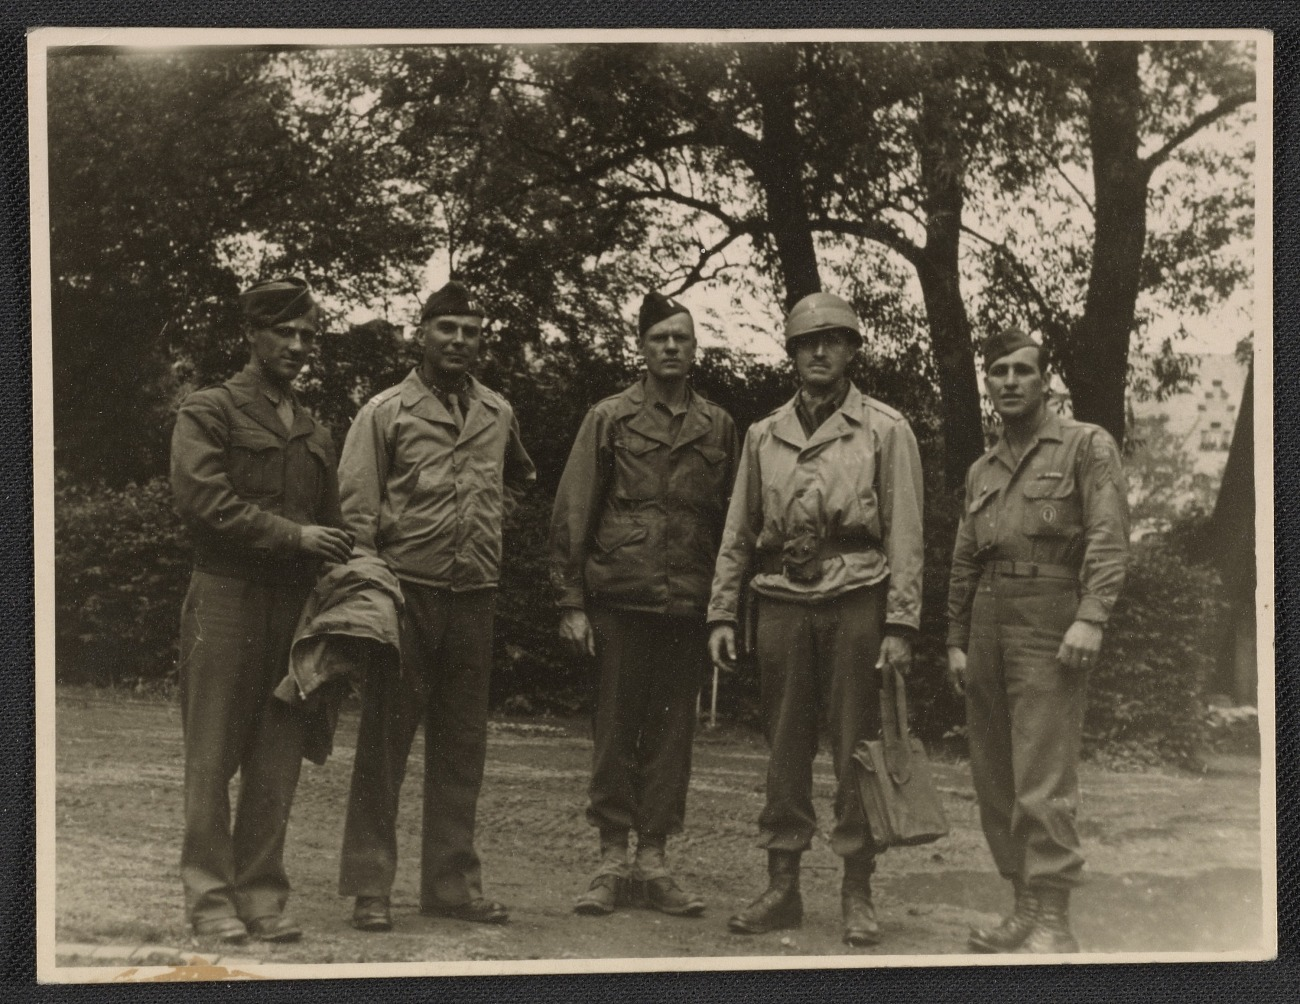 """George Stout during WWII, pictured 4th from the left. Inscription on back of photo: """"These characters, left to right are: Pfc Rowland (my driver), Capt. Hancock, Lt. Moore, old Pop, Cpt. Fontana (another driver). Picture made in Marburg, Germany, early this month, June 1945"""" (George Leslie Stout papers, 1897-1978. Archives of American Art, Smithsonian Institution.)"""